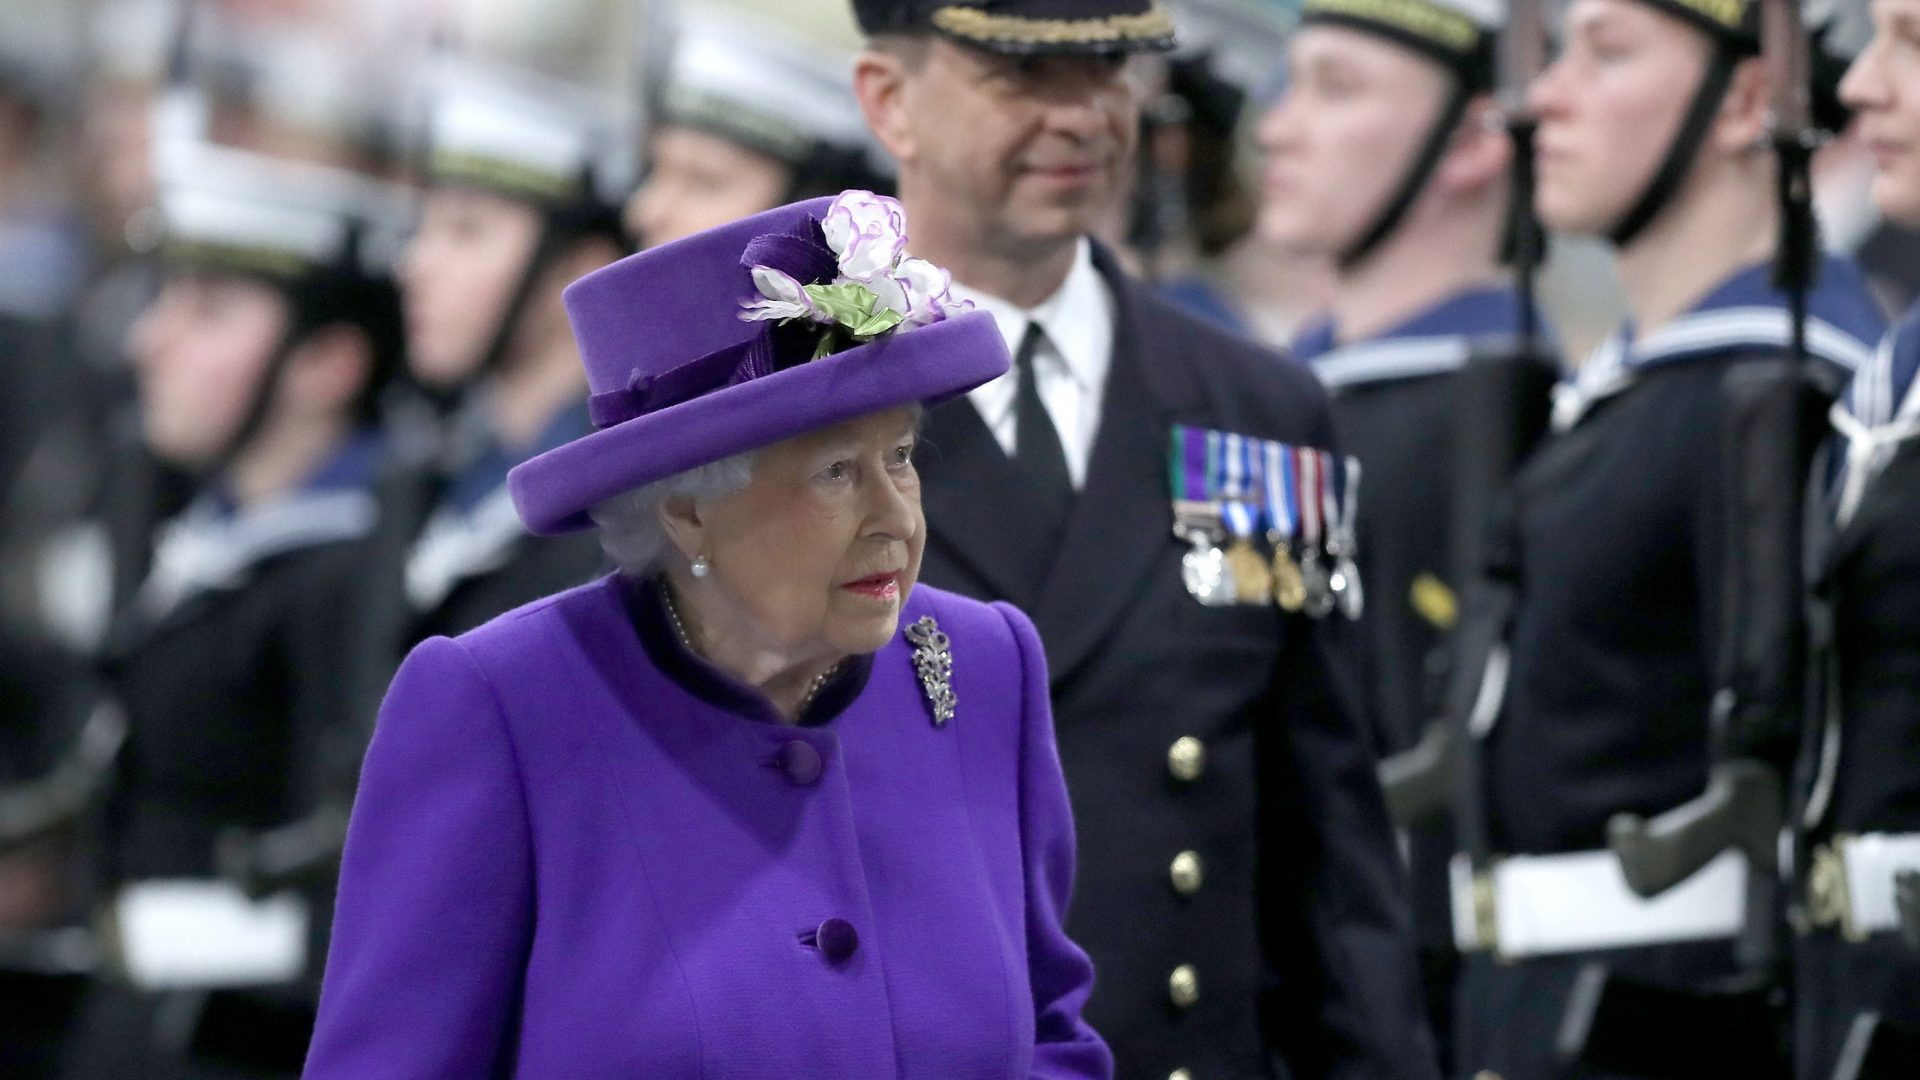 The Queen arrives for the commissioning ceremony (Andrew Matthews/PA)